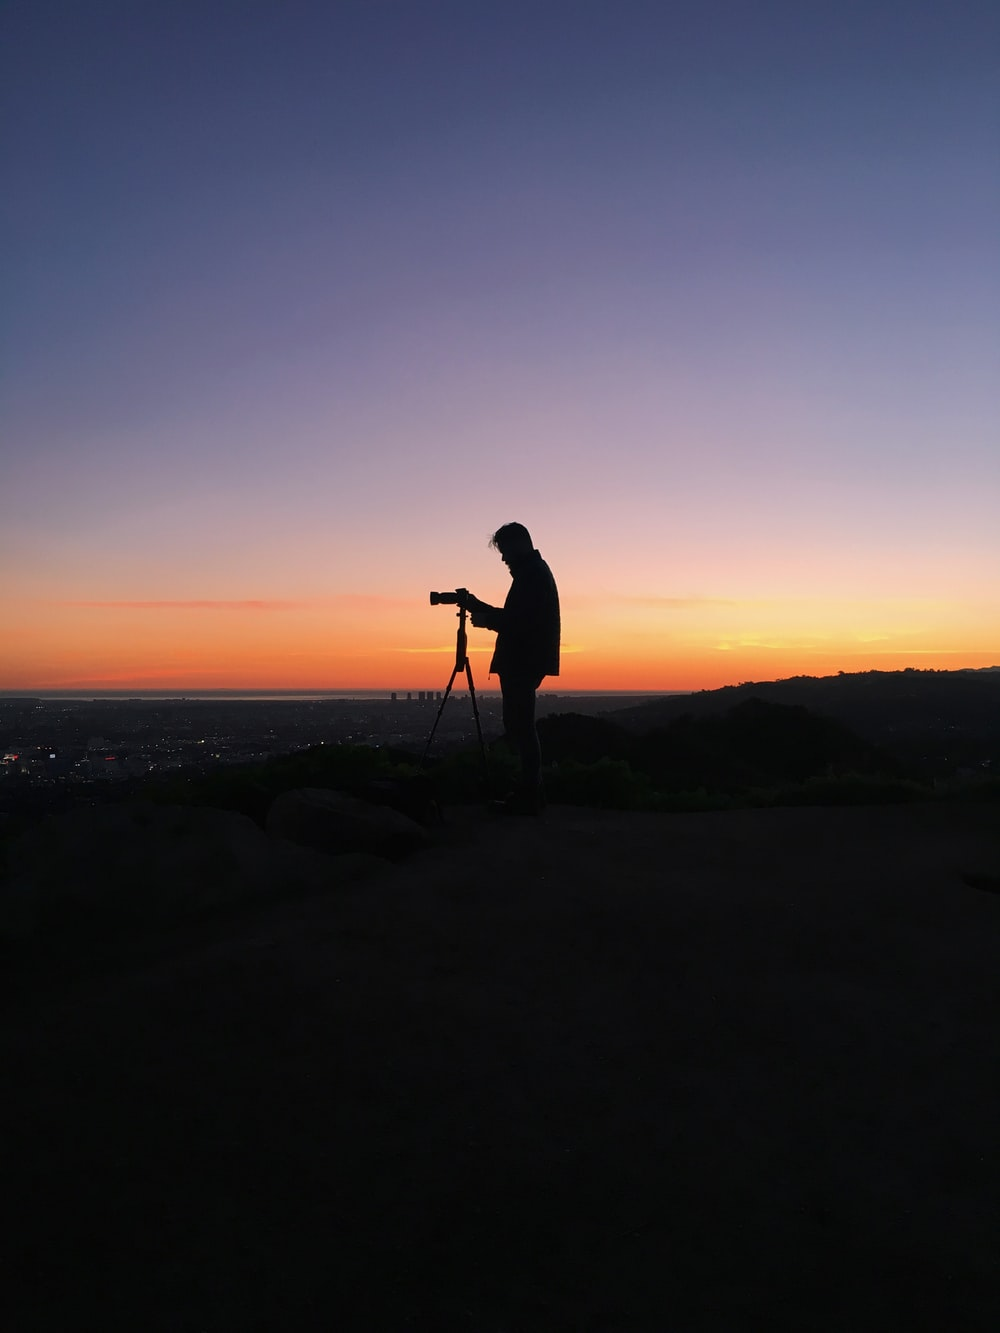 silhouette of man in front of DSLR camera during golden hour